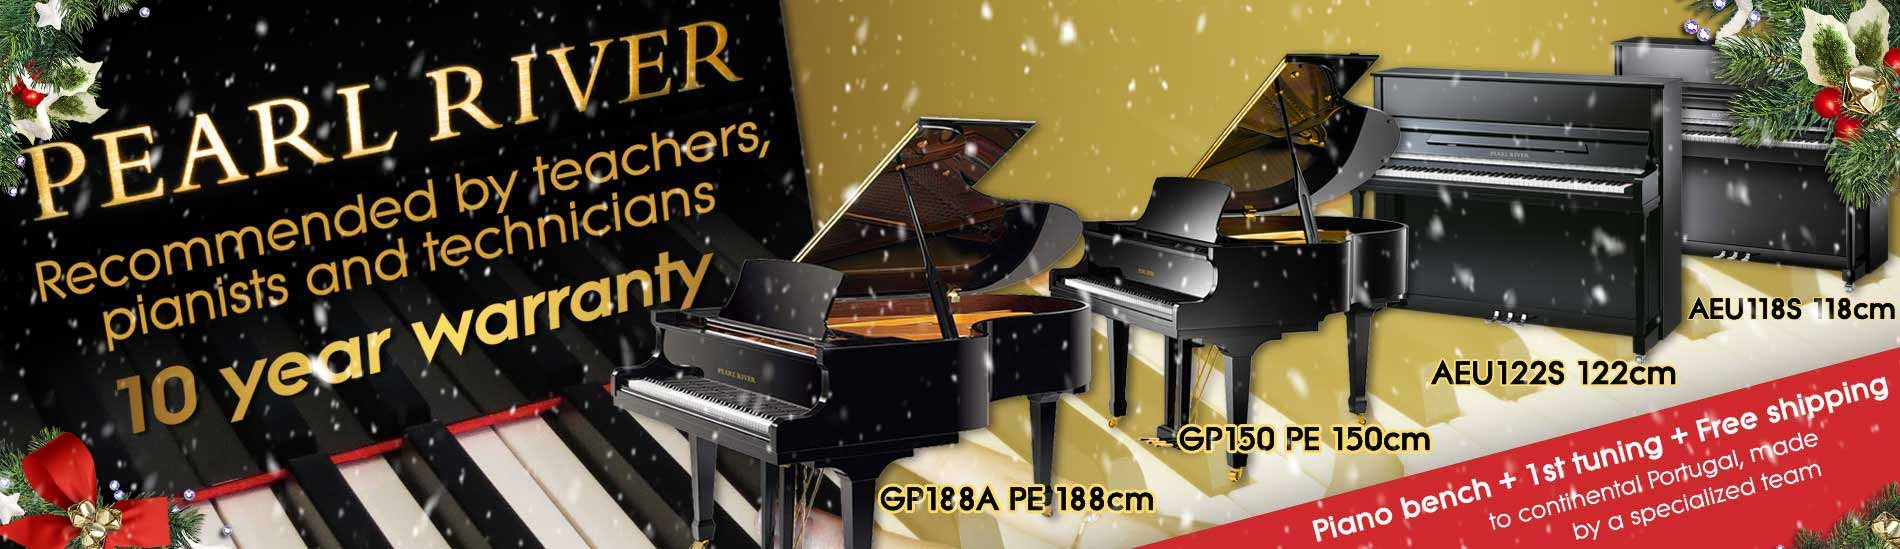 Pearl River Pianos - Recommended by teachers, pianists and technicians!